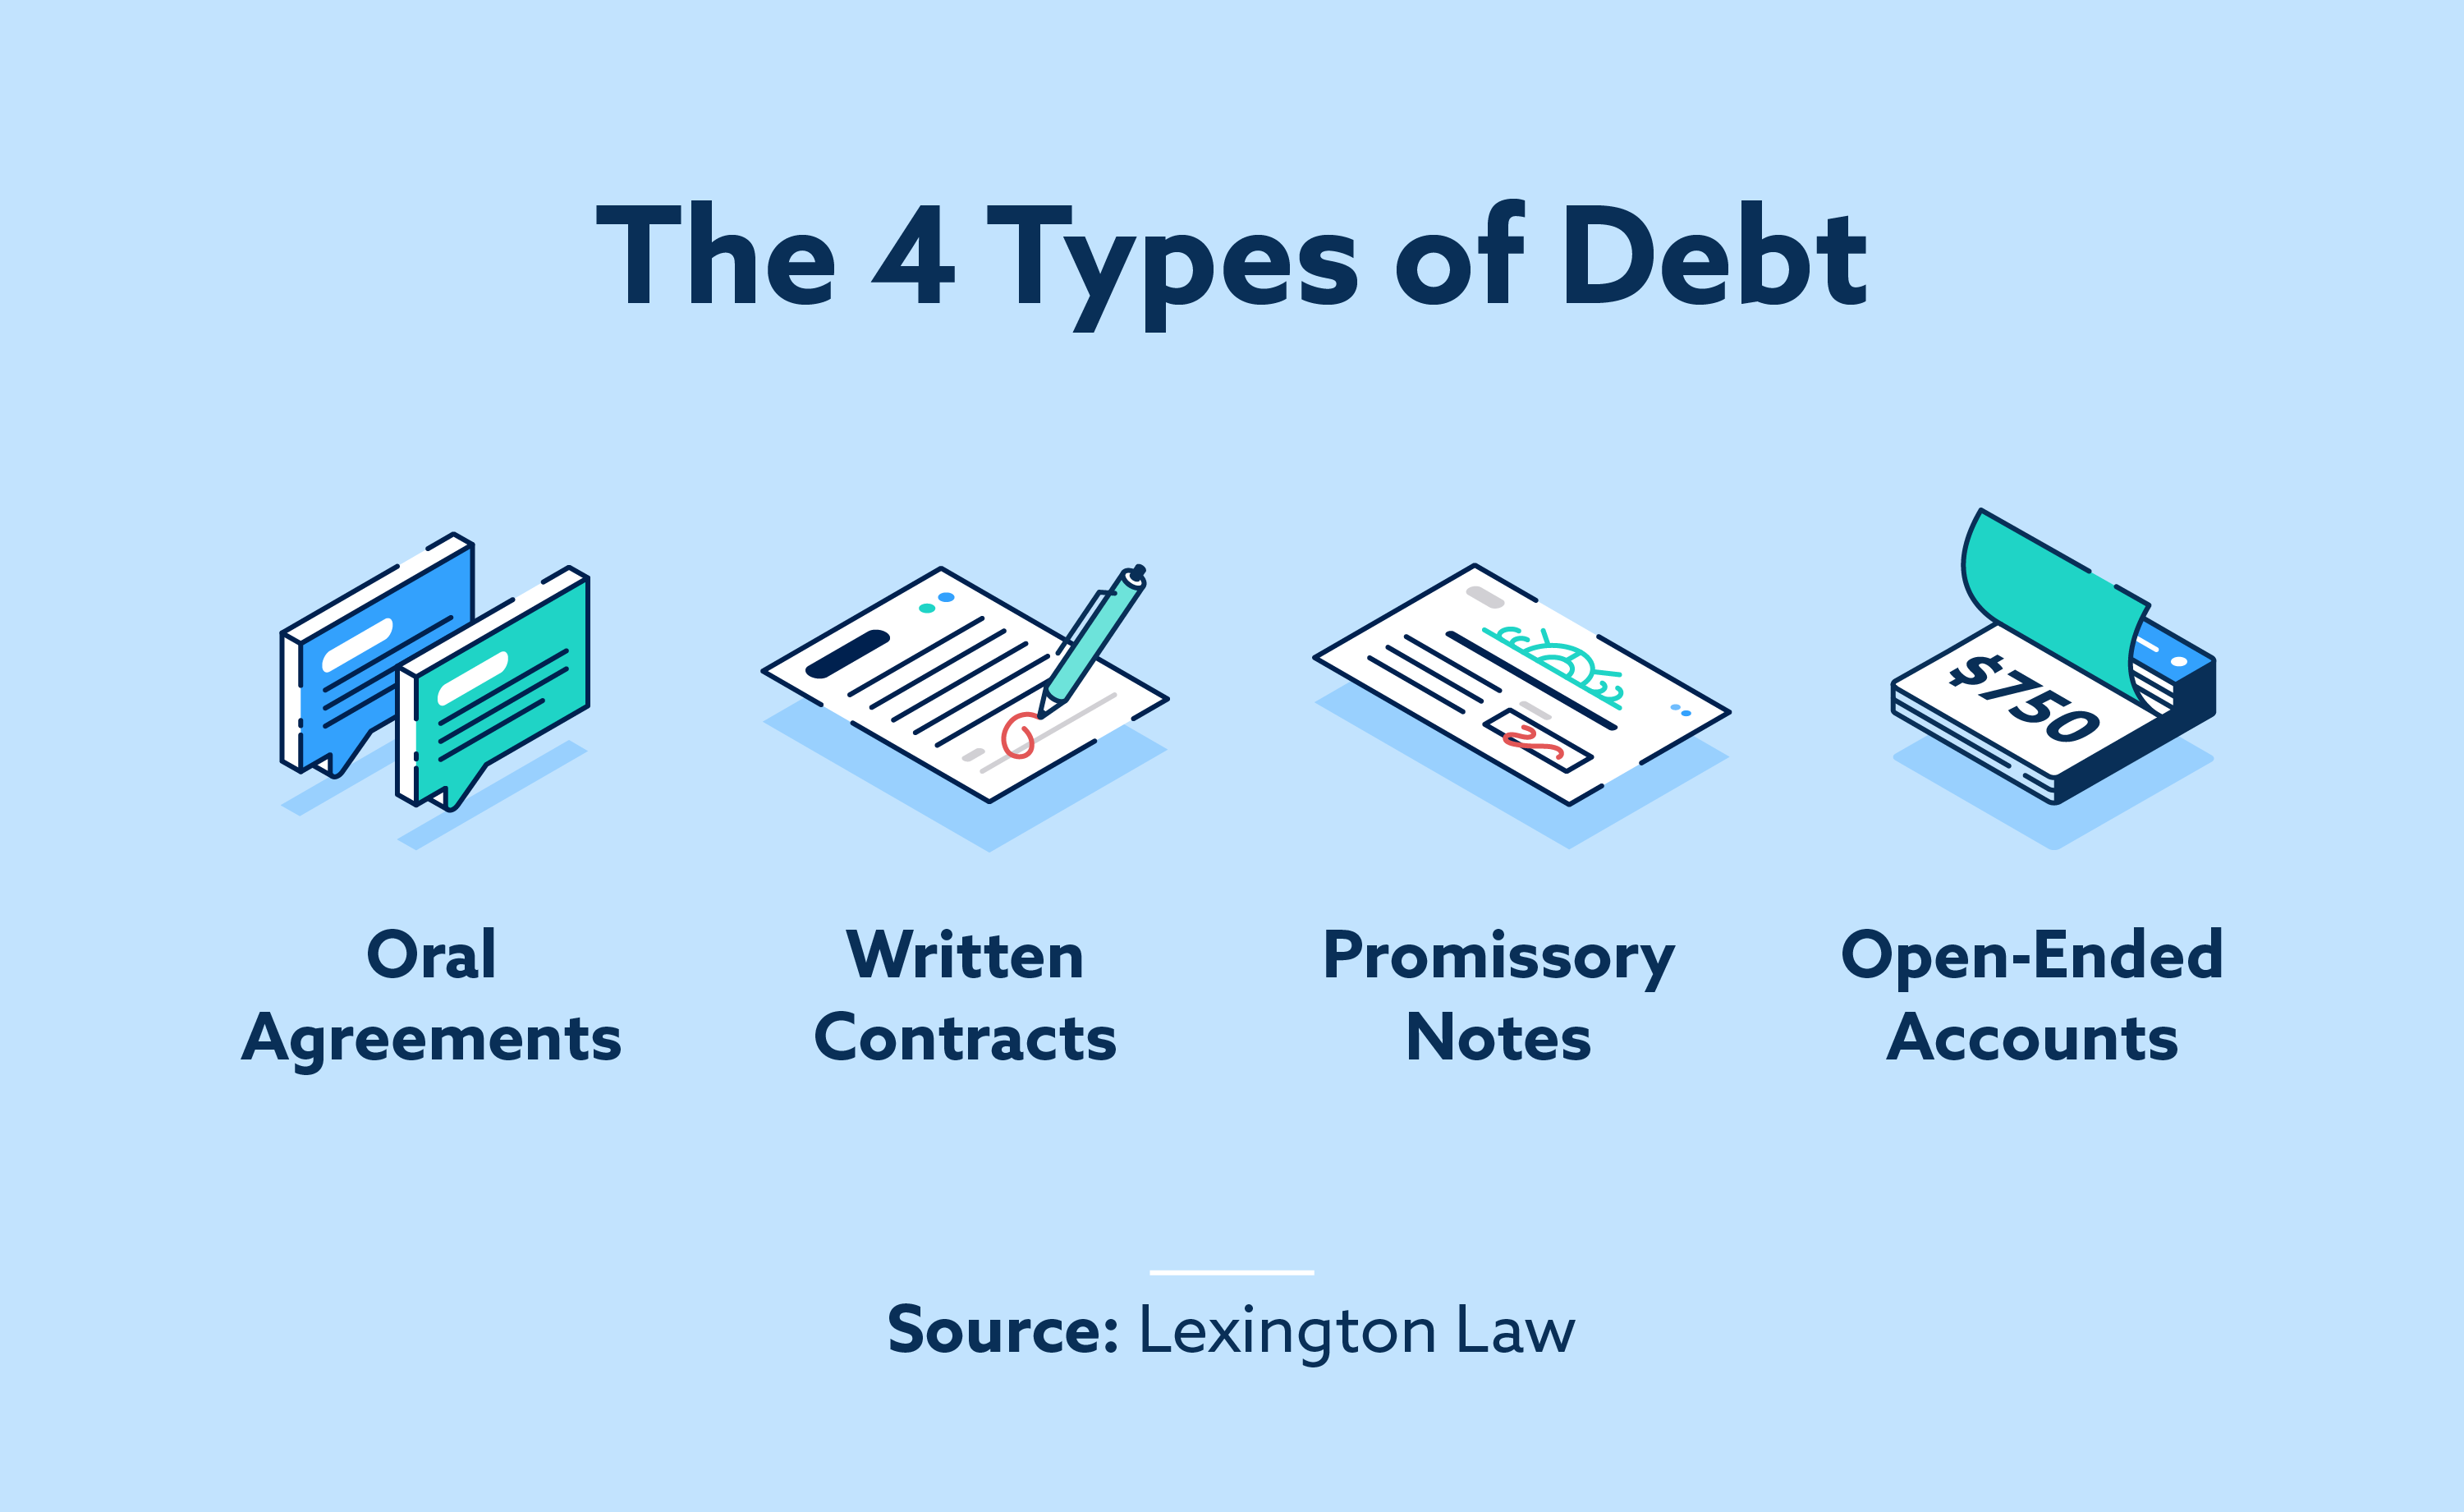 The 4 types of debt